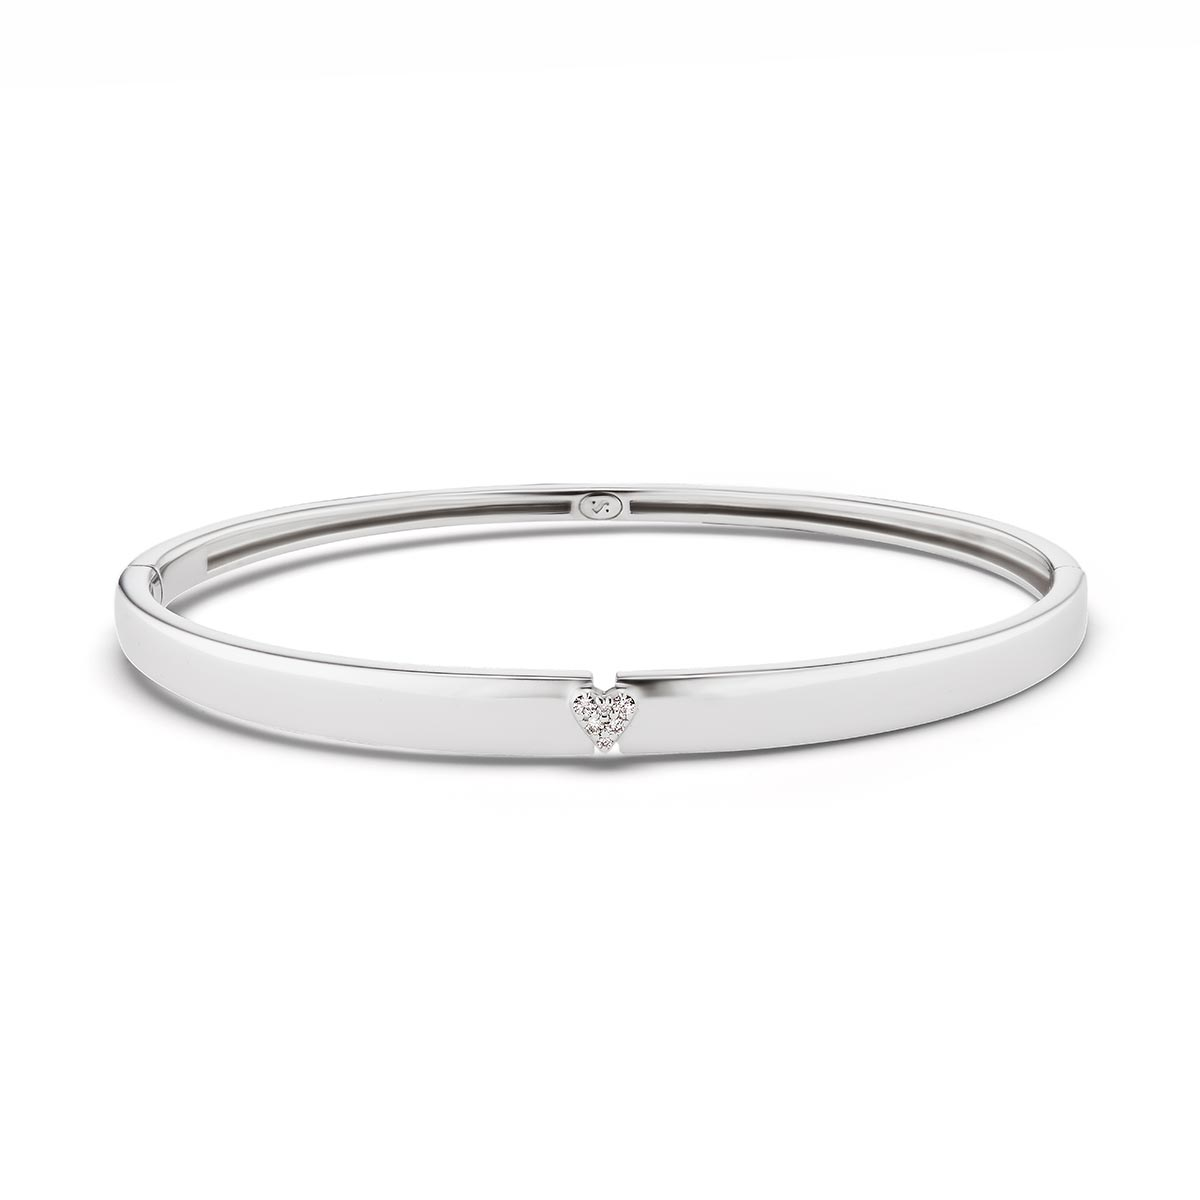 Unstoppable with All Your Heart Bangle Bracelet